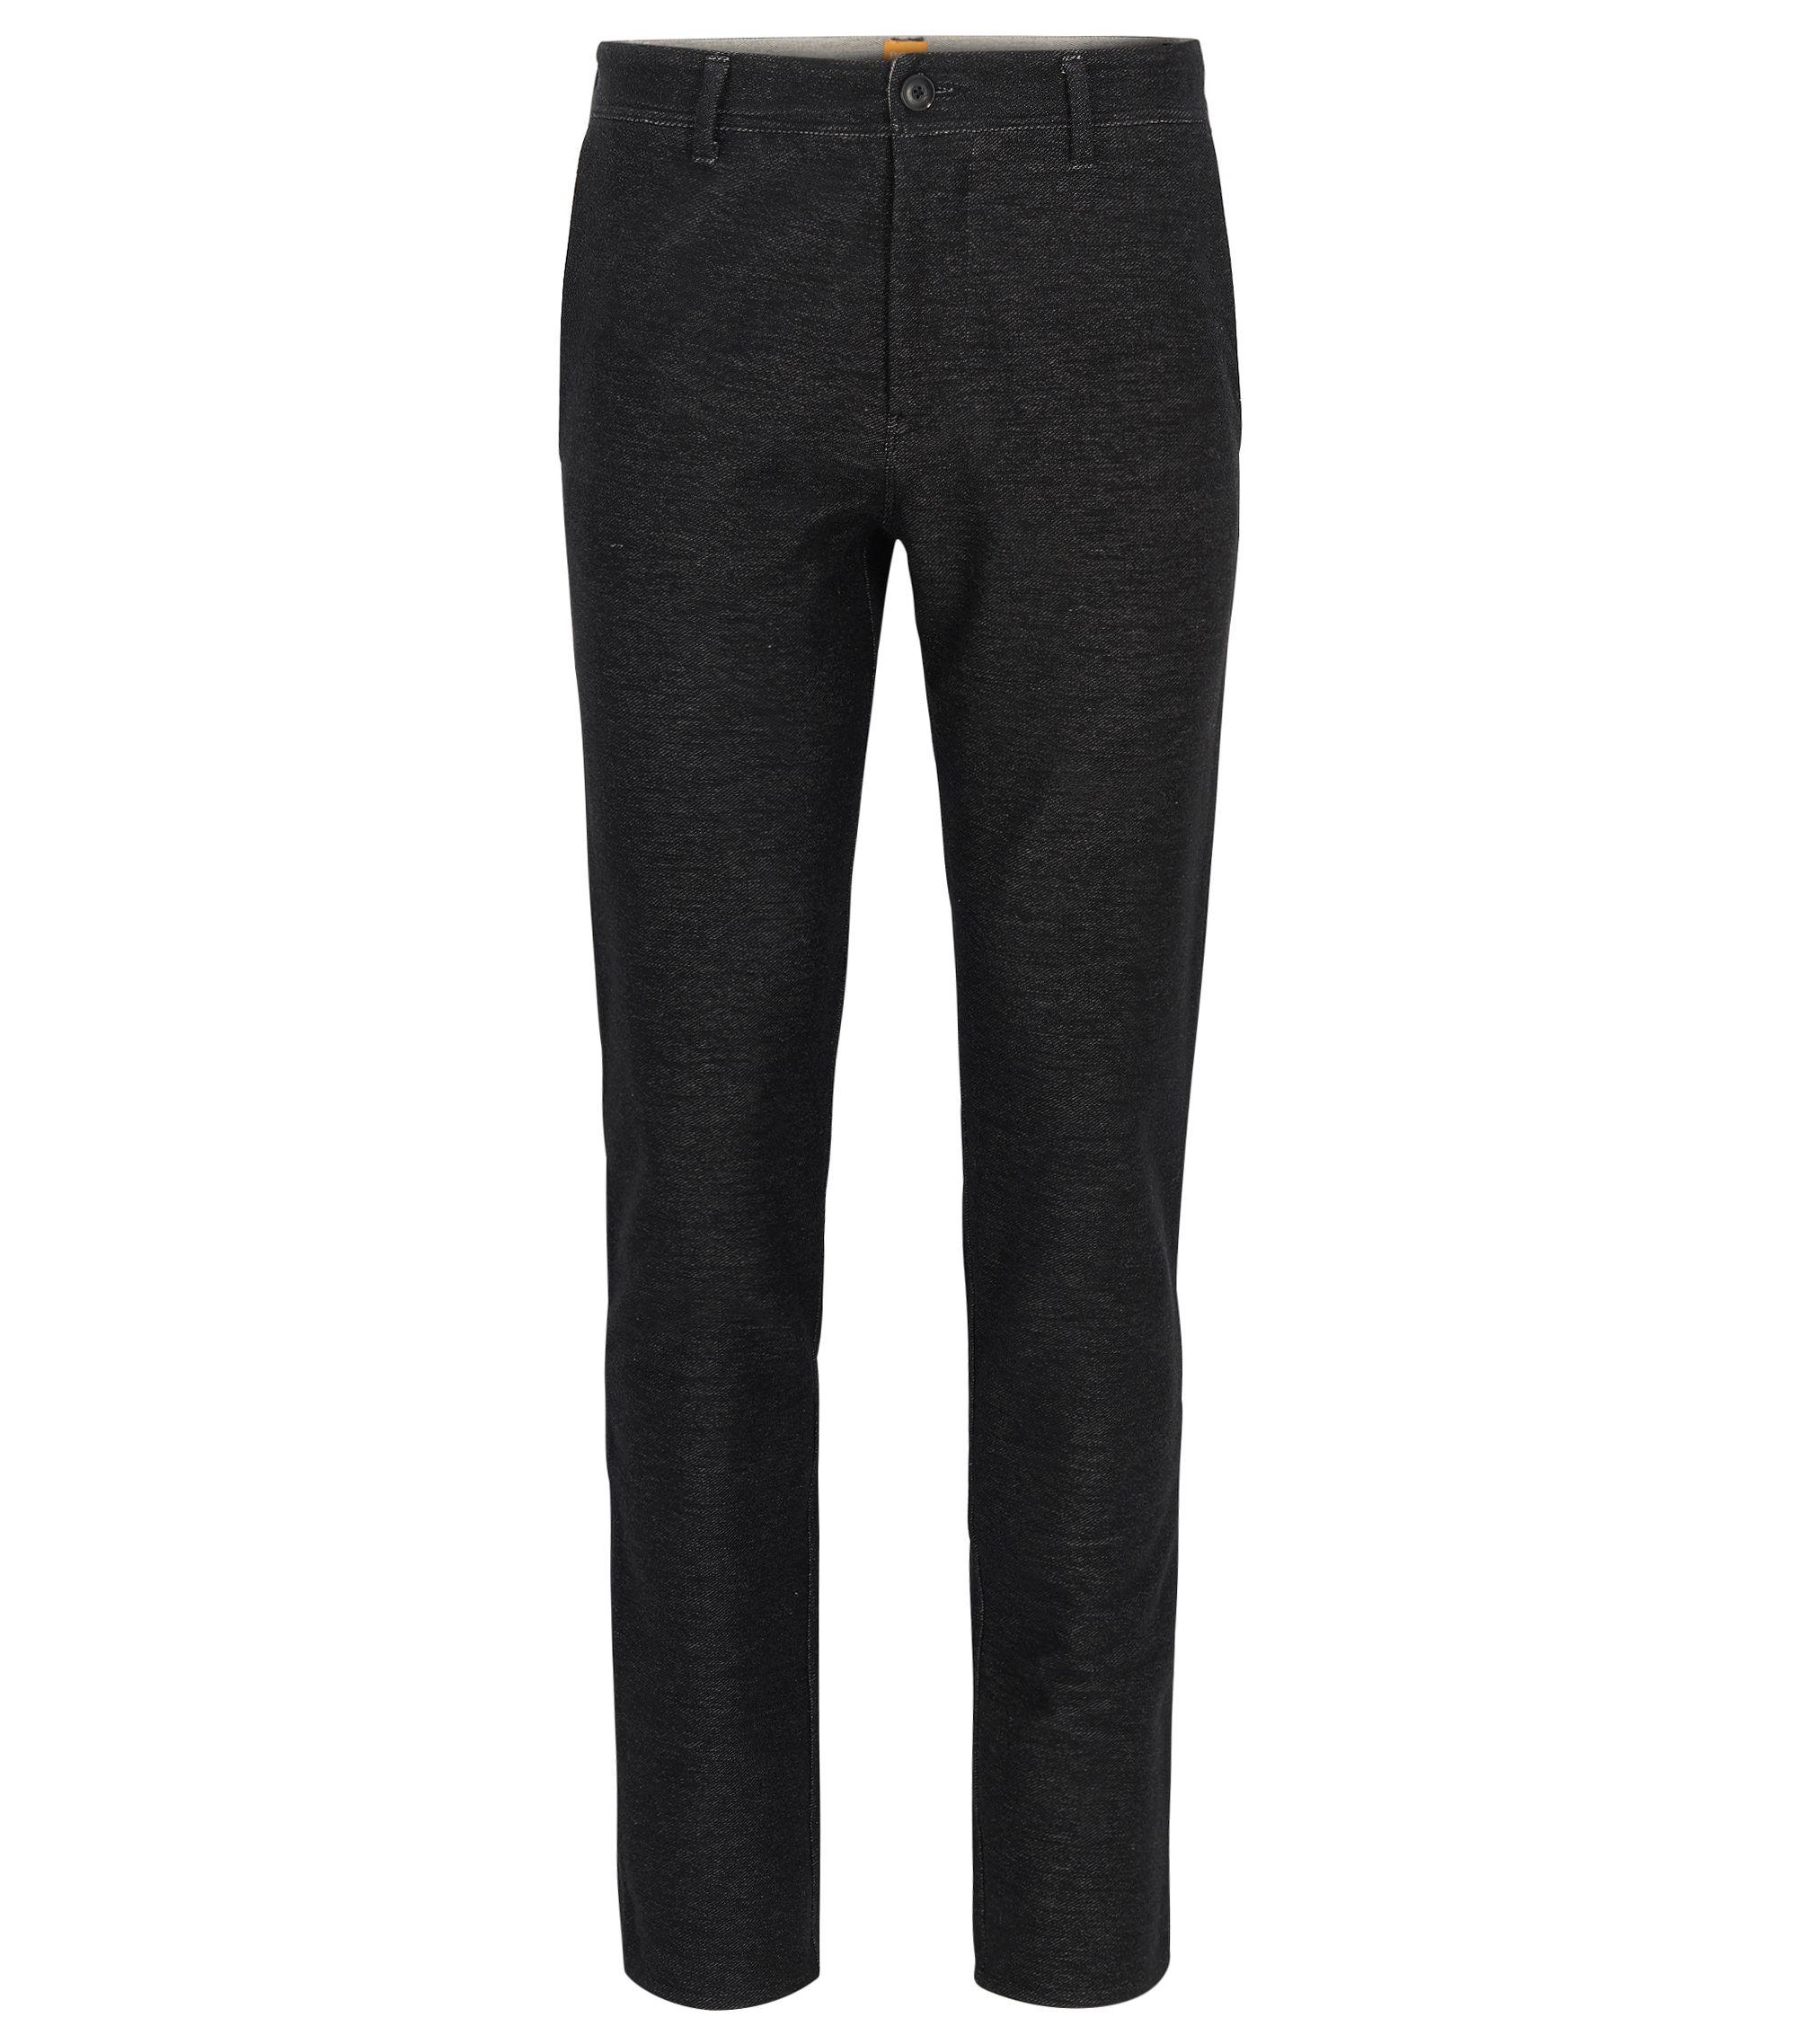 Tapered-fit trousers in stretch jersey, Black